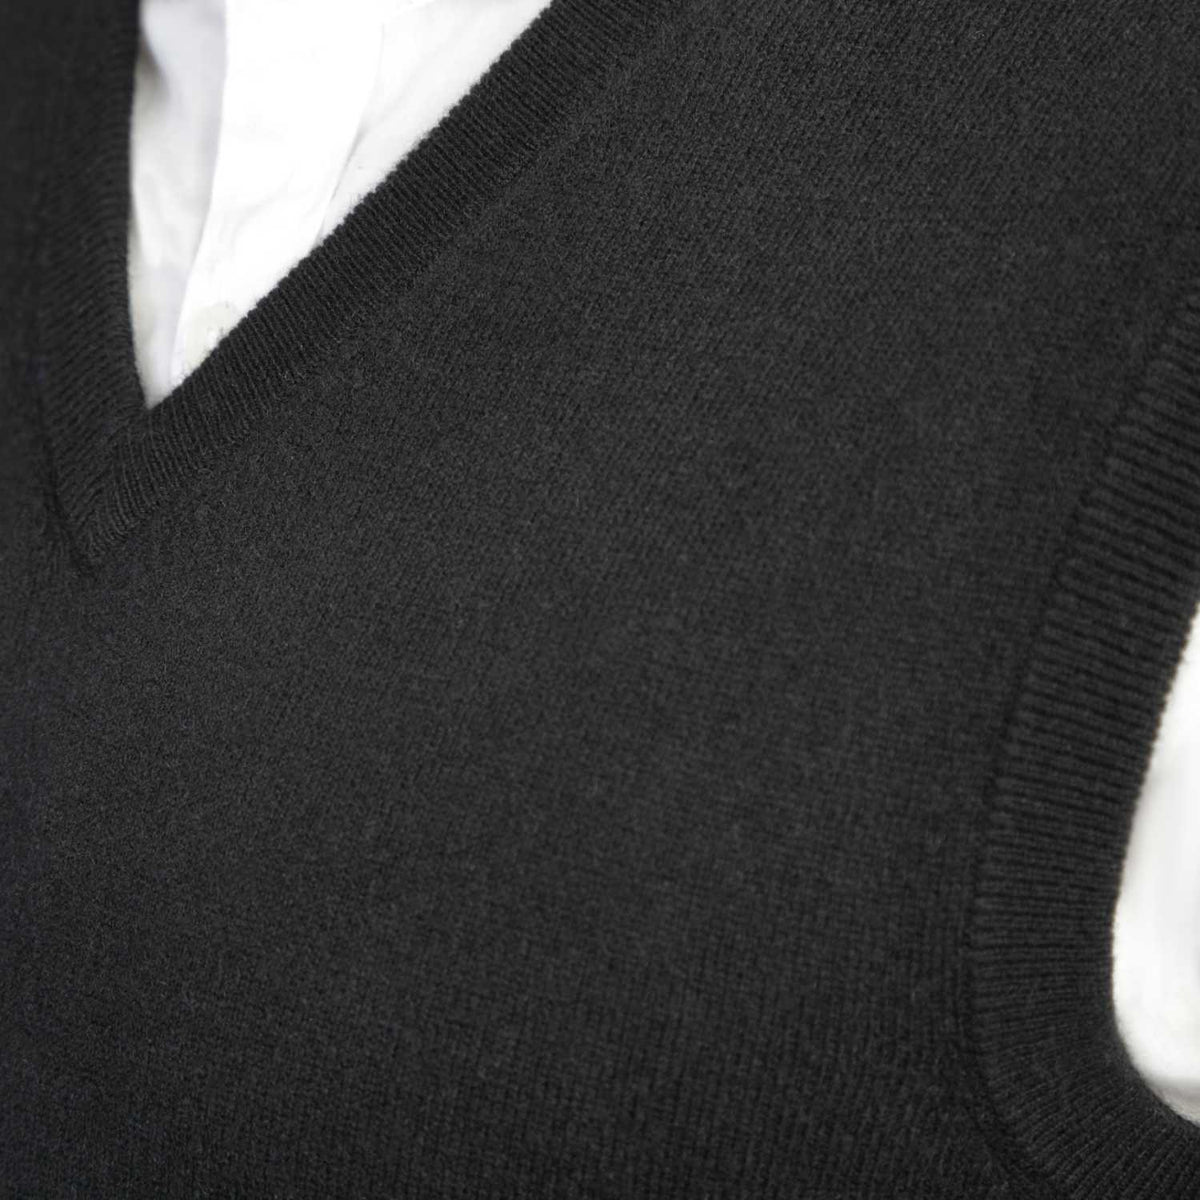 Mens Black Cashmere Sleeveless Vest Sweater | Close up | Shop at The Cashmere Choice | London